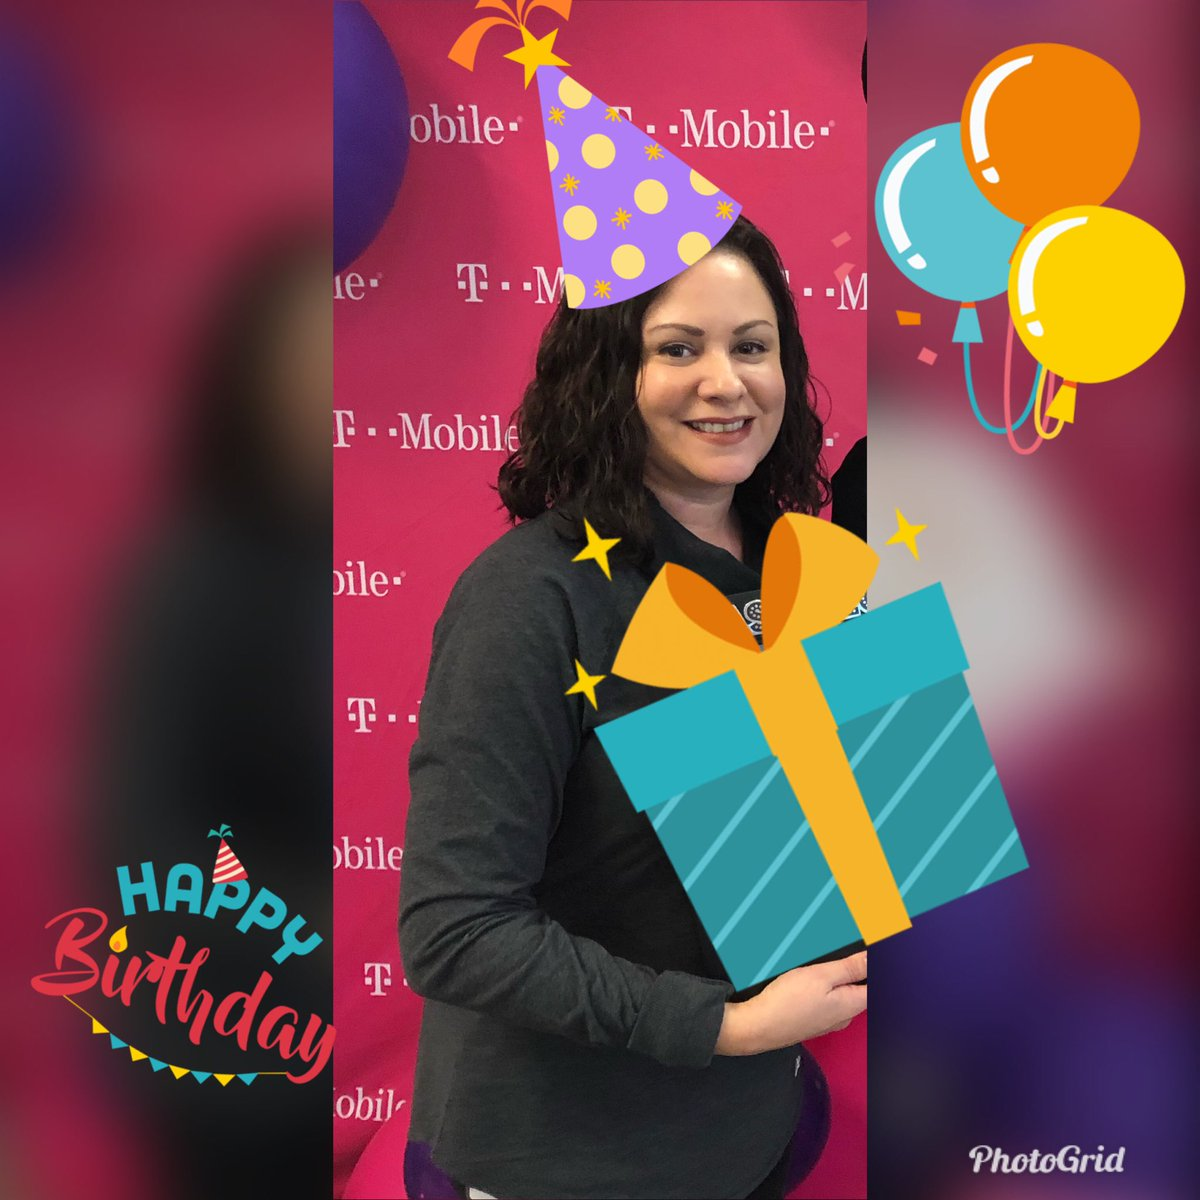 Wishing @pattyc101 a very happy birthday!! Thank you for everything you do for the Miami team! #MotivateInspireAchieve @bnash001 @JonFreier